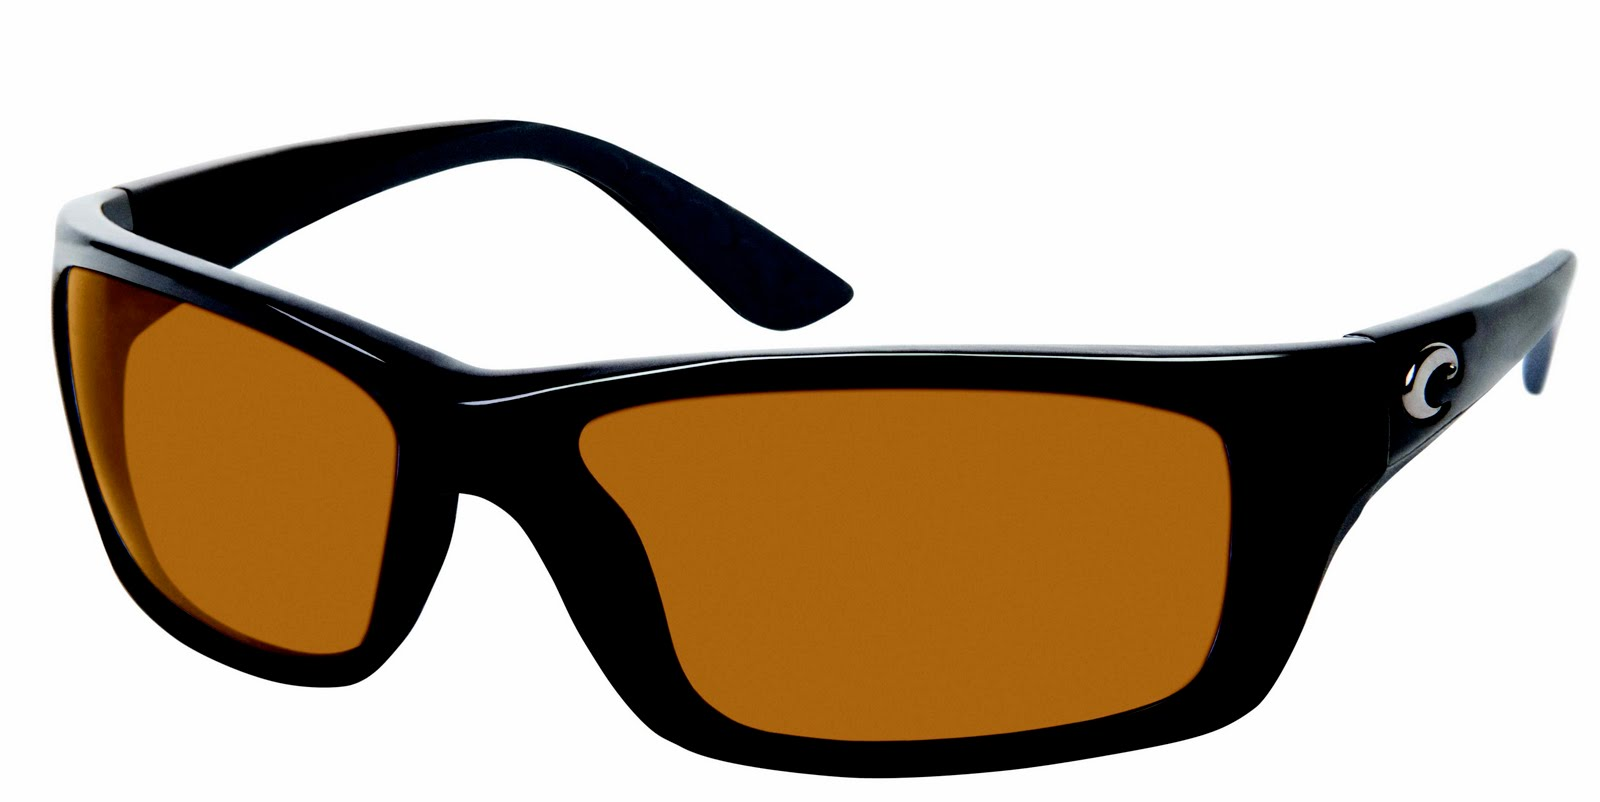 Lowcountry outdoors: Costa - Jose frames and PCB lens debut